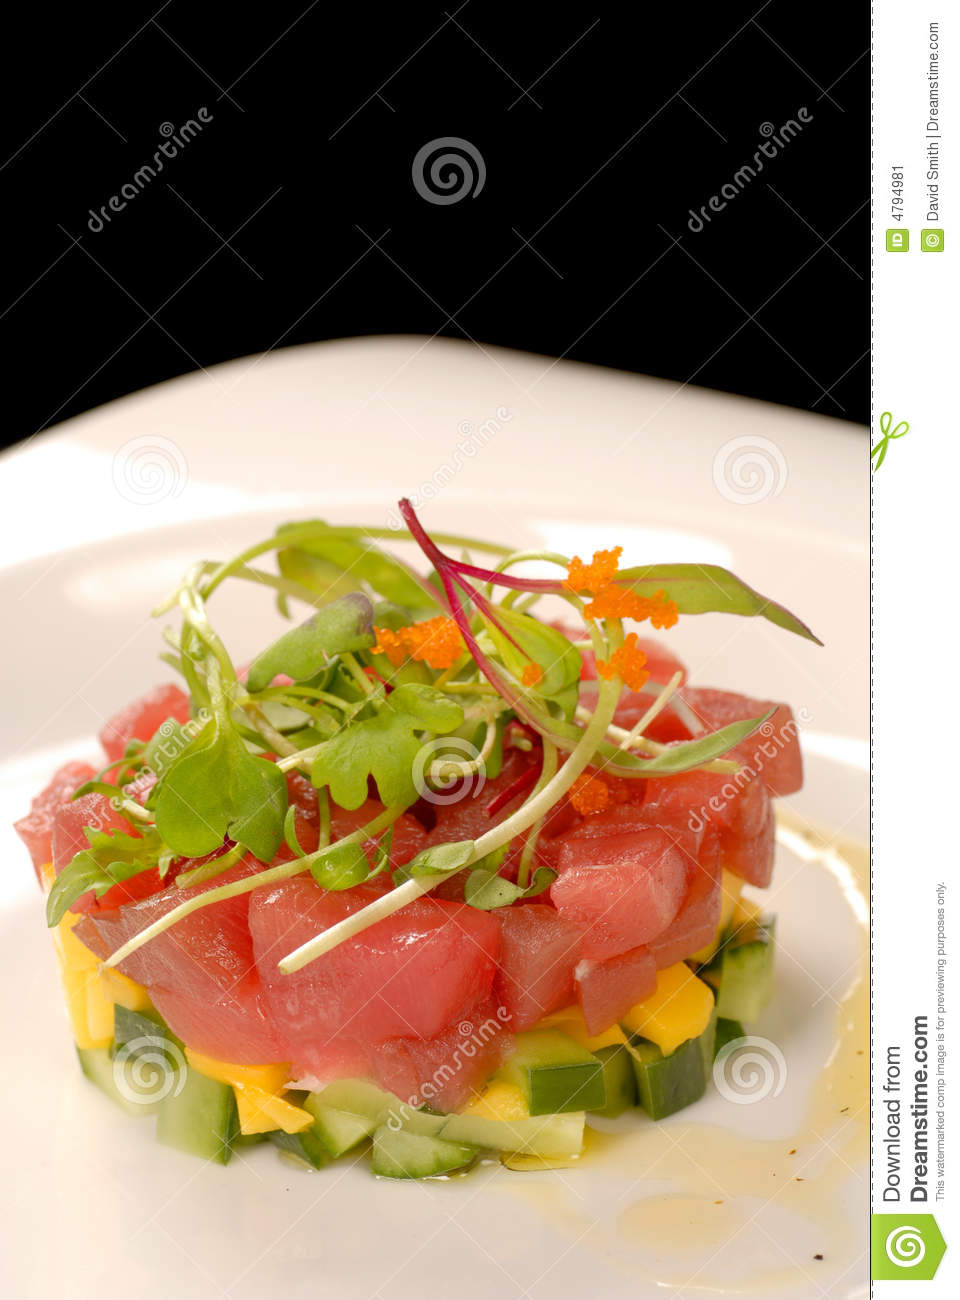 Fresh Asian Tuna And Mango Tartare Stock Image - Image: 4794981